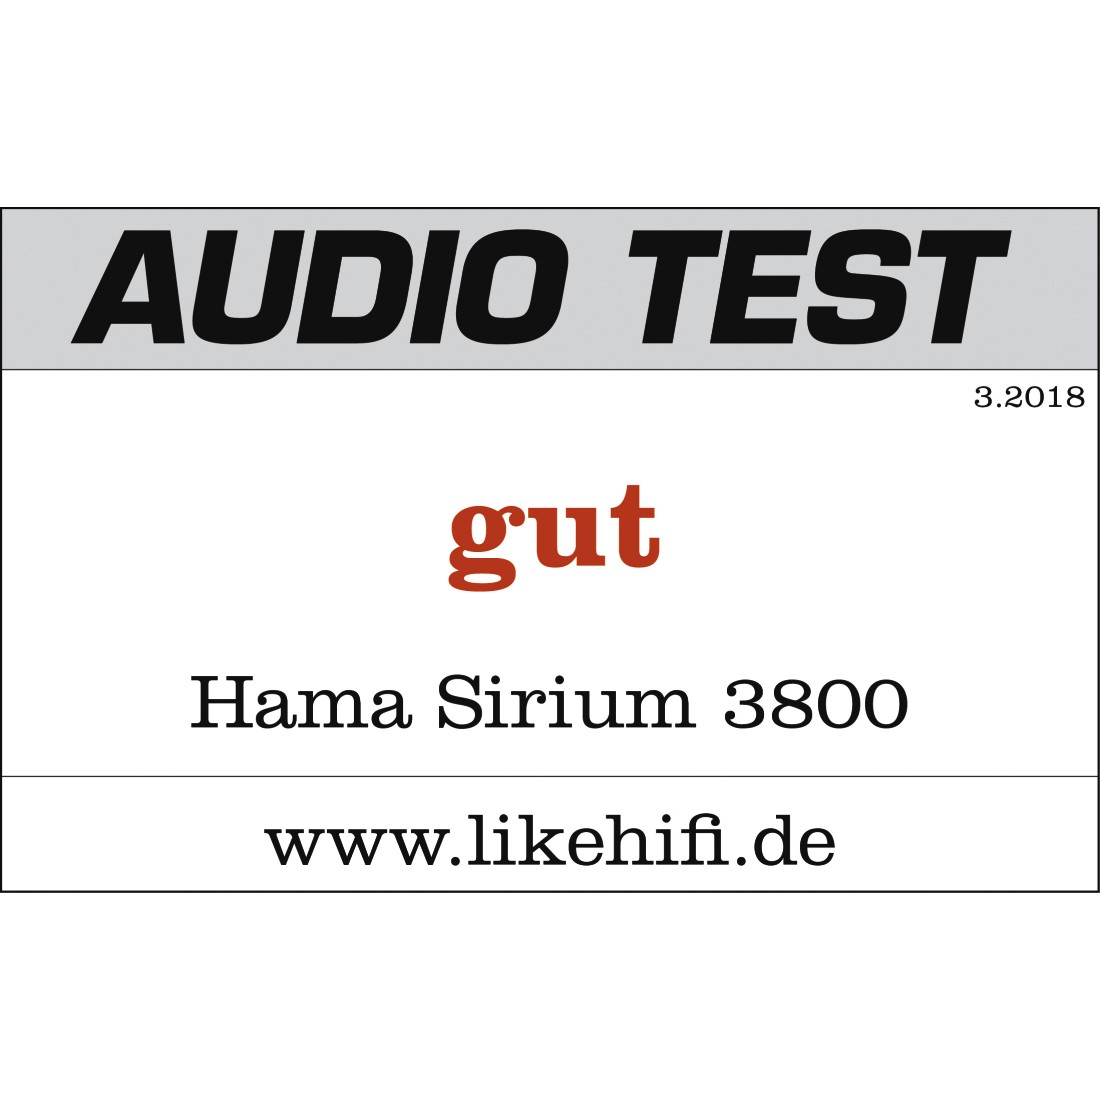 tex2 Druckfähiges Testurteil 2 - Hama, SIRIUM3800ABT Smart Sound Bar BT/ALEXA